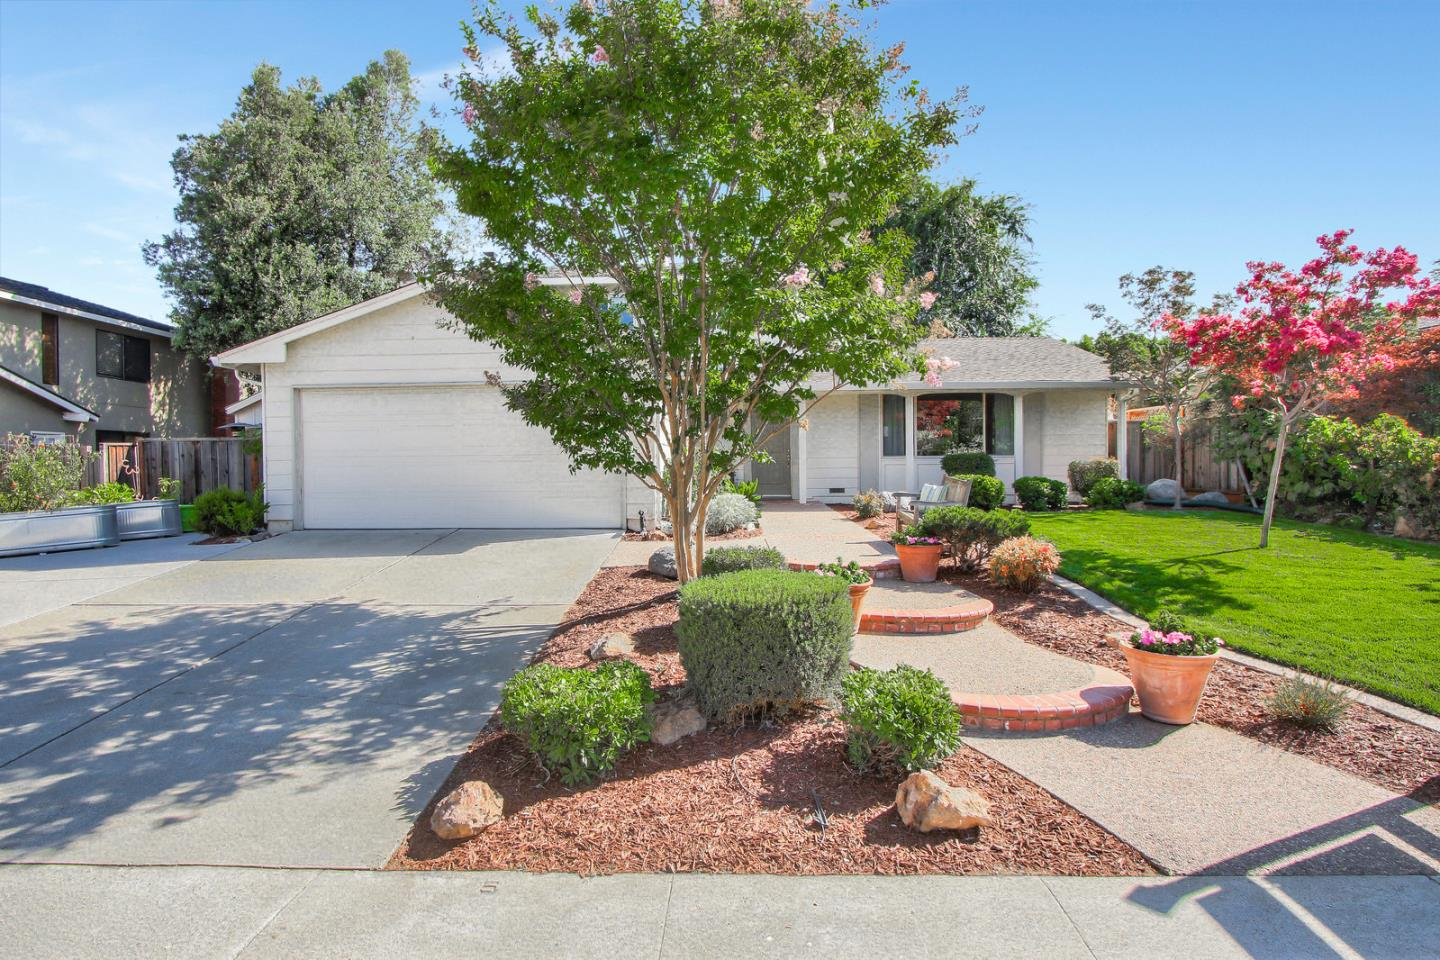 Nicely updated 4 bedroom, 2.5 bath home with great floorplan (downstairs bedroom) in desirable Almaden location with neighborhood pool.  Backyard fit for entertaining with outdoor kitchen, gazebo, fireplace and putting green.  Large storage shed on the side of the house.  Great curb appeal and extended driveway for oversized vehicles.  Located in highly desired Oak Tree Park Community with access to the community pool.  Walking distance to Jeffrey Fontana Park.